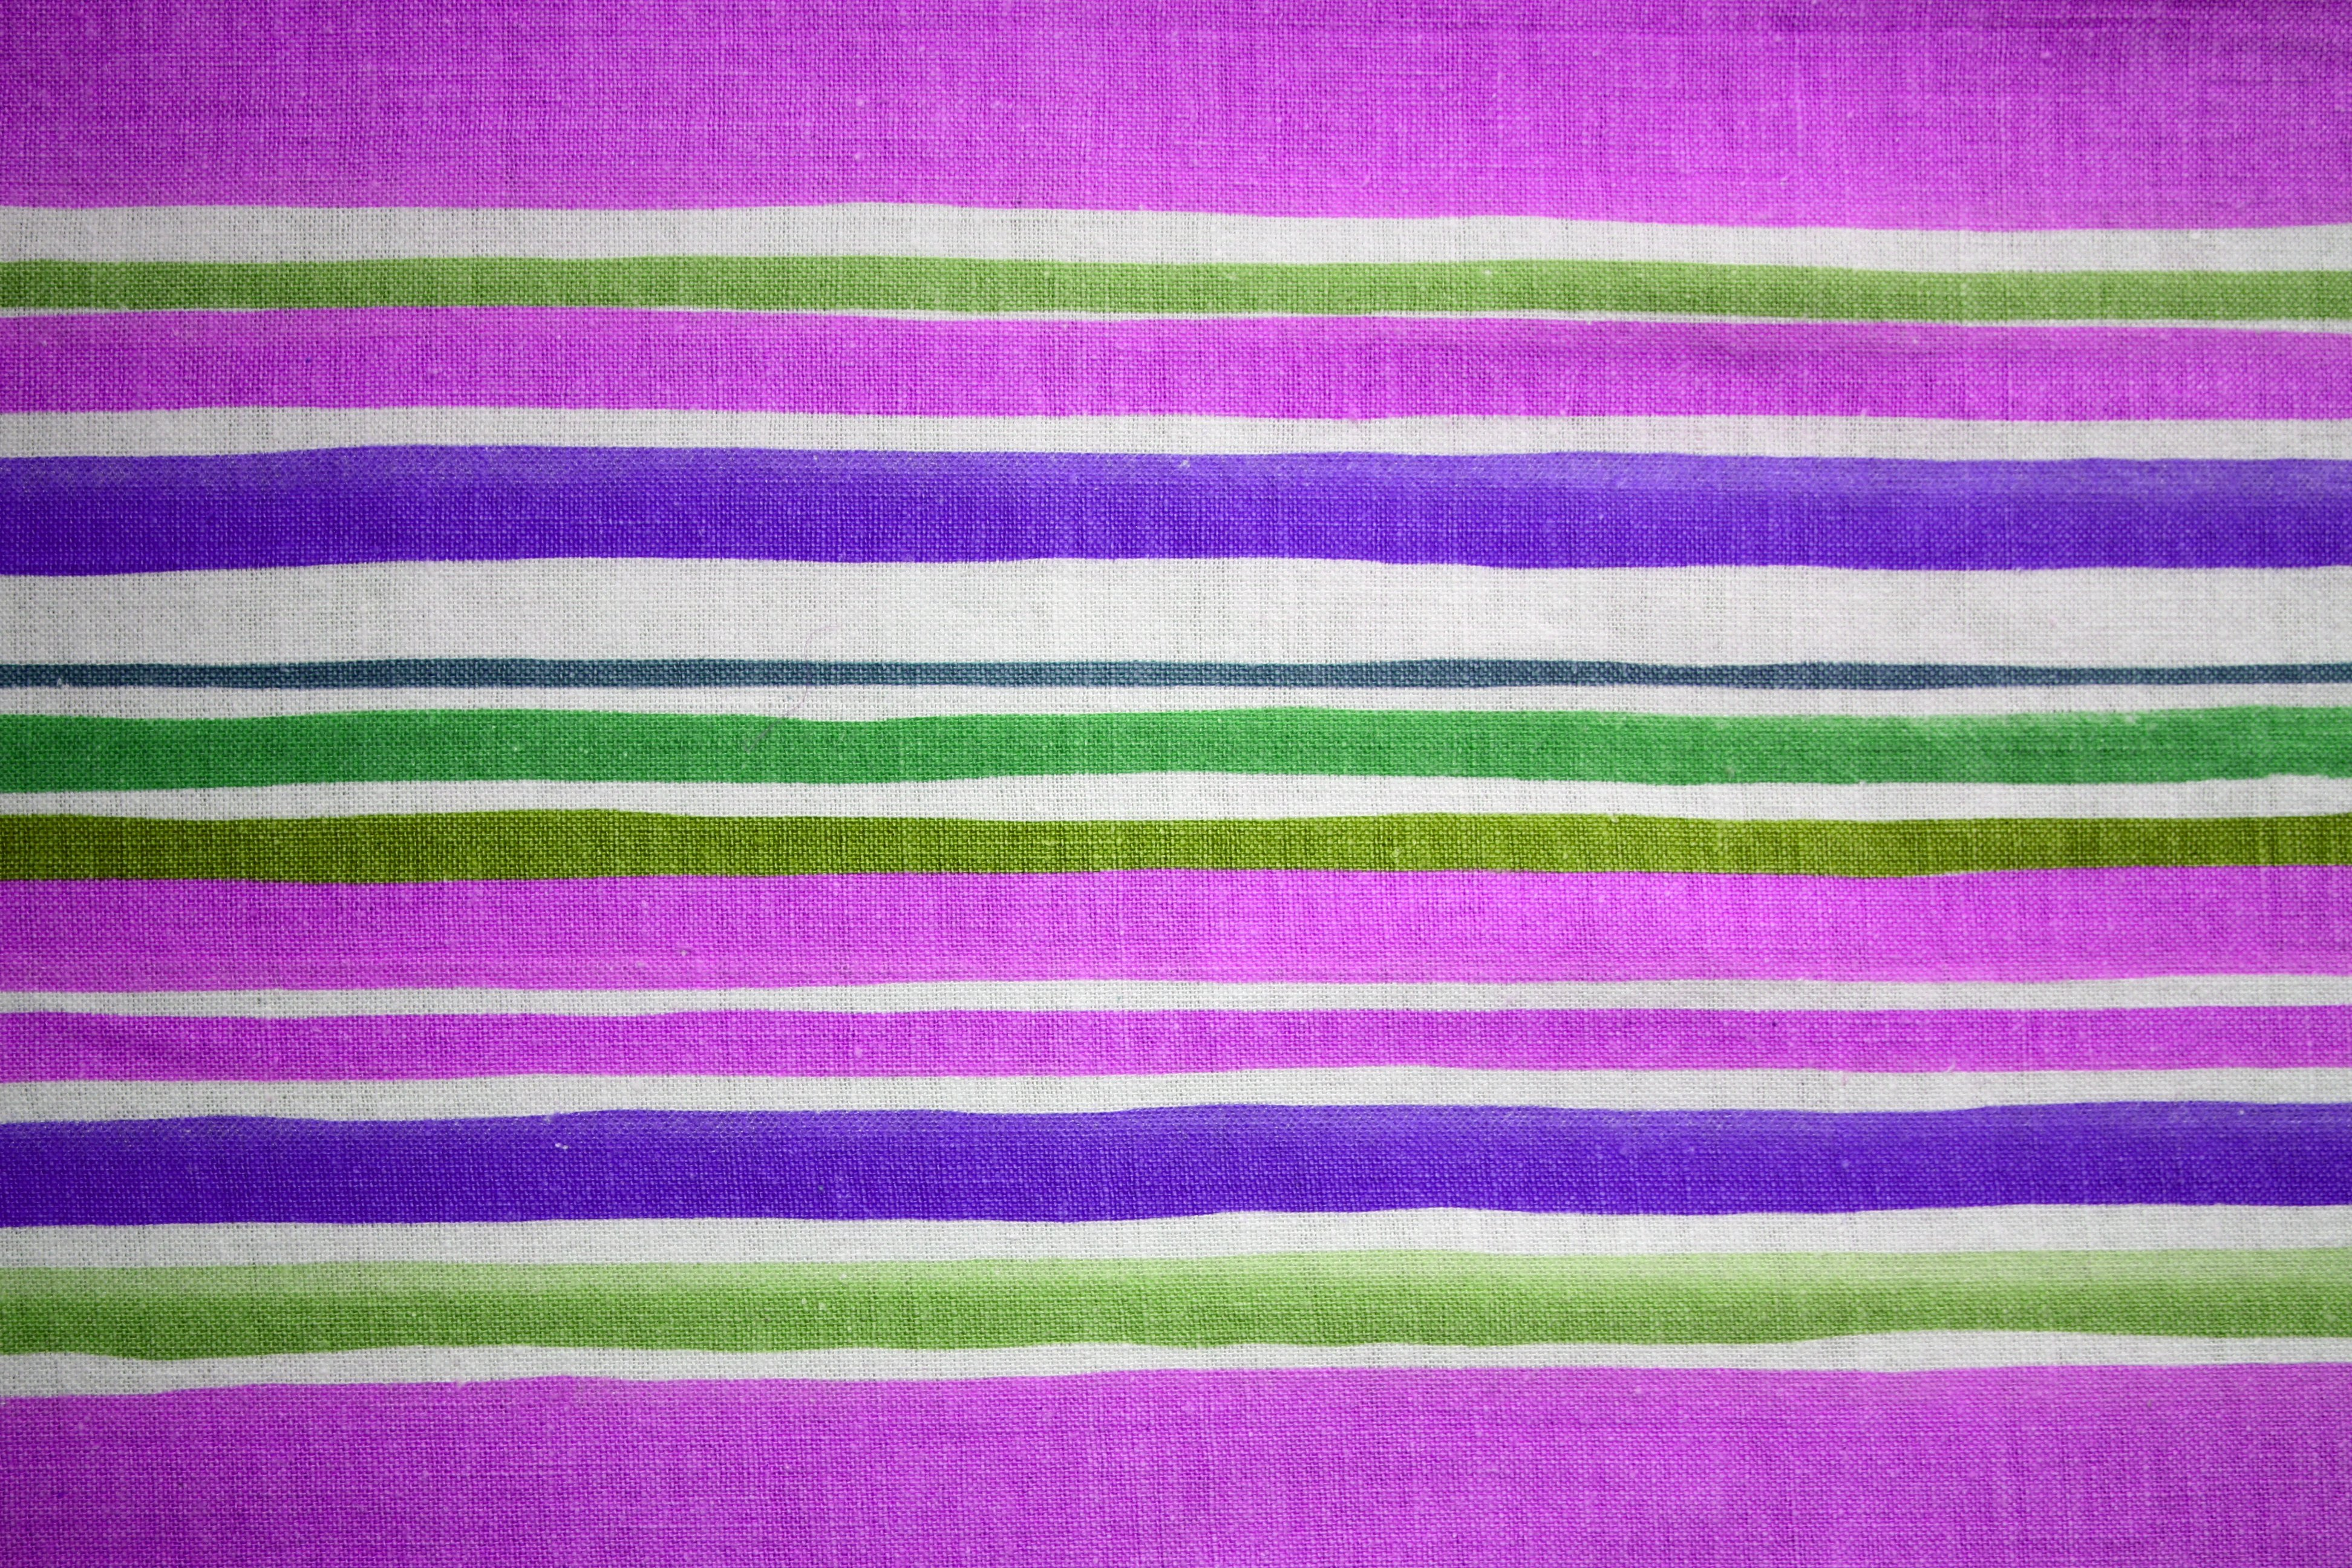 Striped Fabric Texture Purple And Green Picture Free